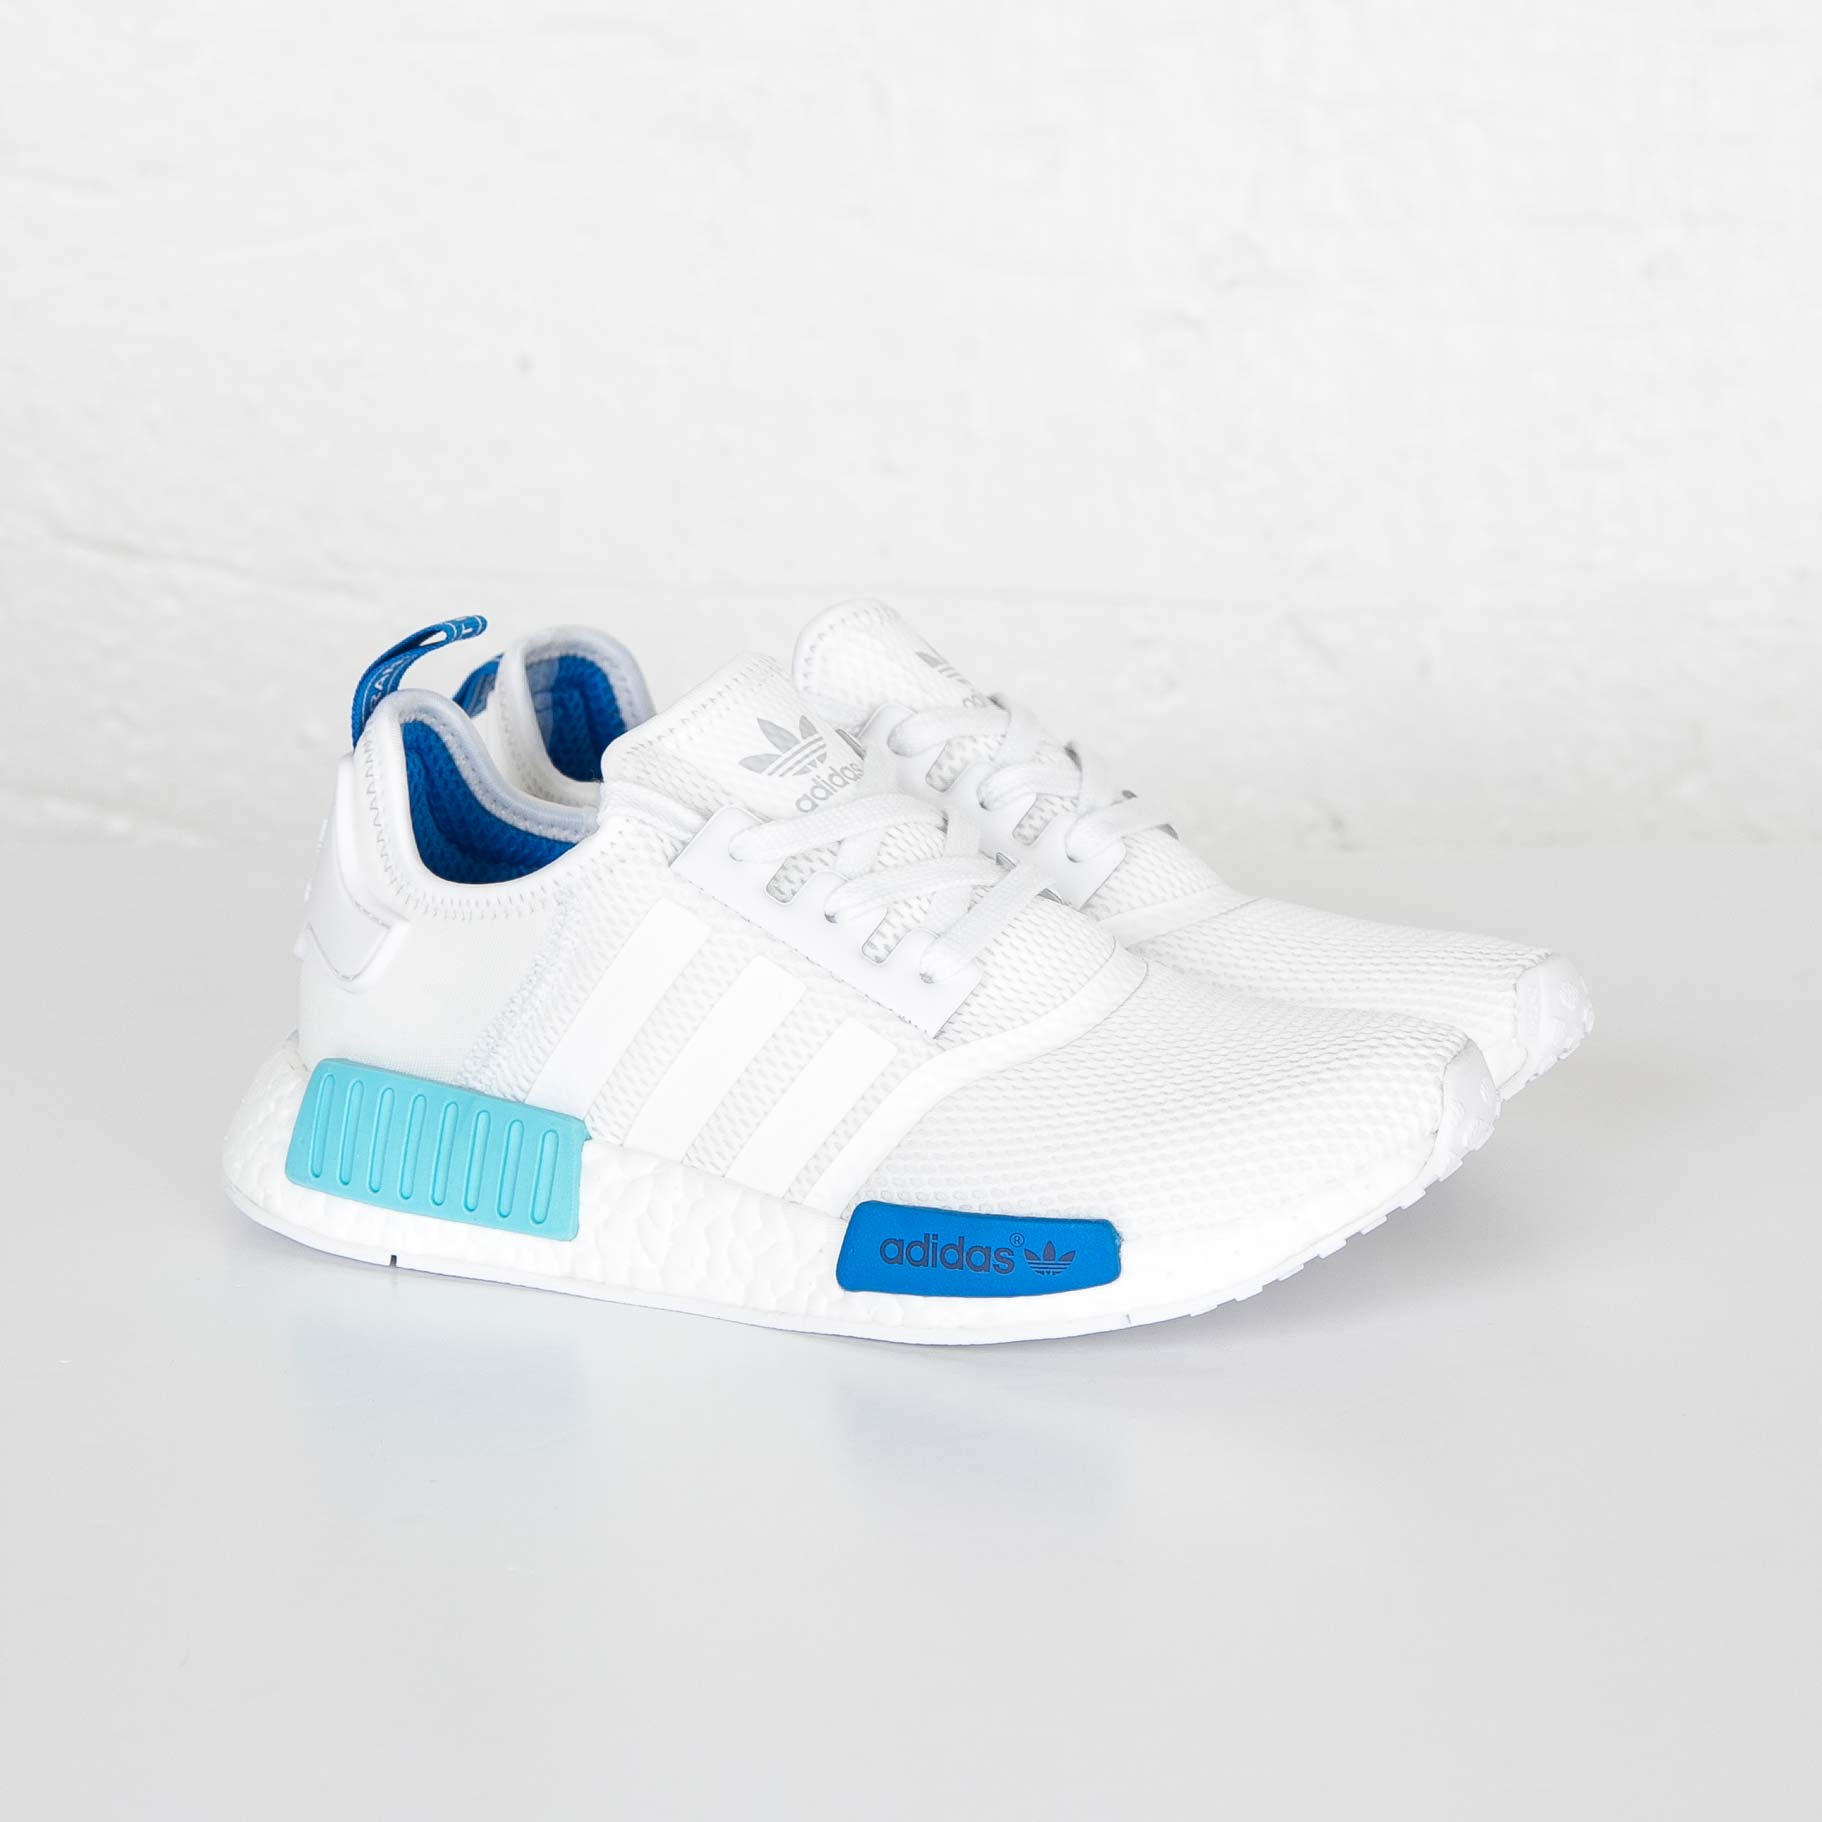 dde737033ad italy adidas nmd runner blanco zapatos location 423a8 9fbeb